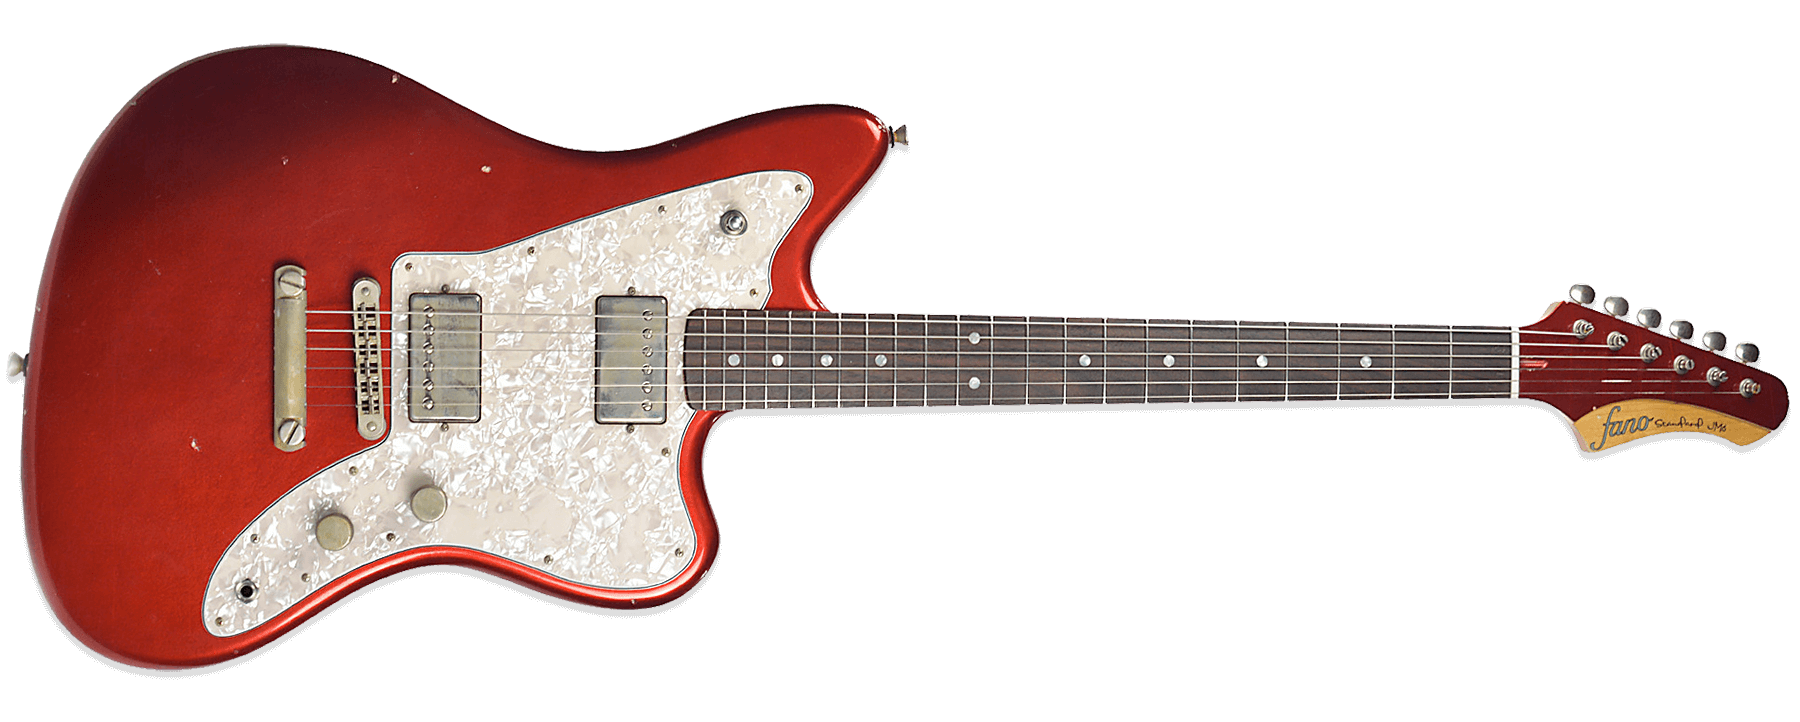 Fano Standard JM6 Candy Apple Red